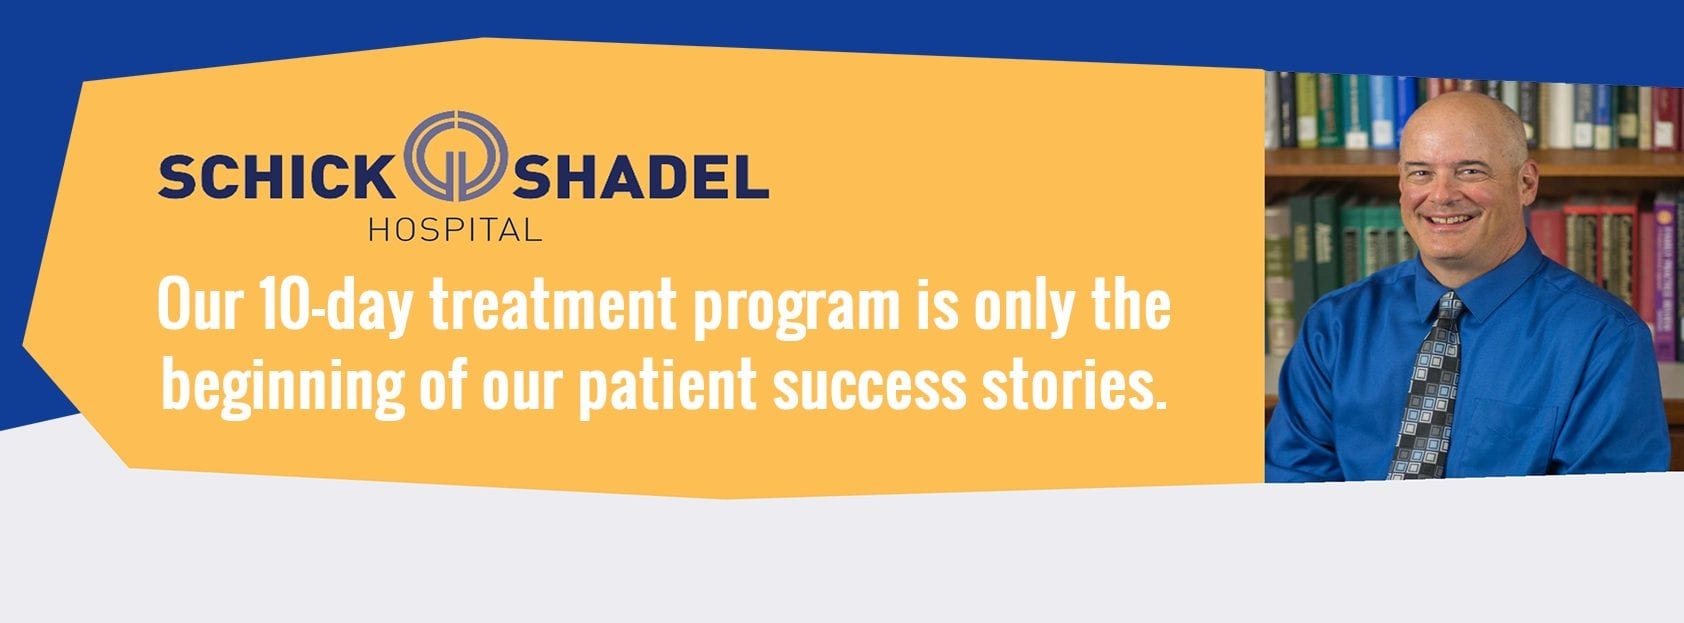 Our ten-day treatment program is only the beginning of our patient success stories.